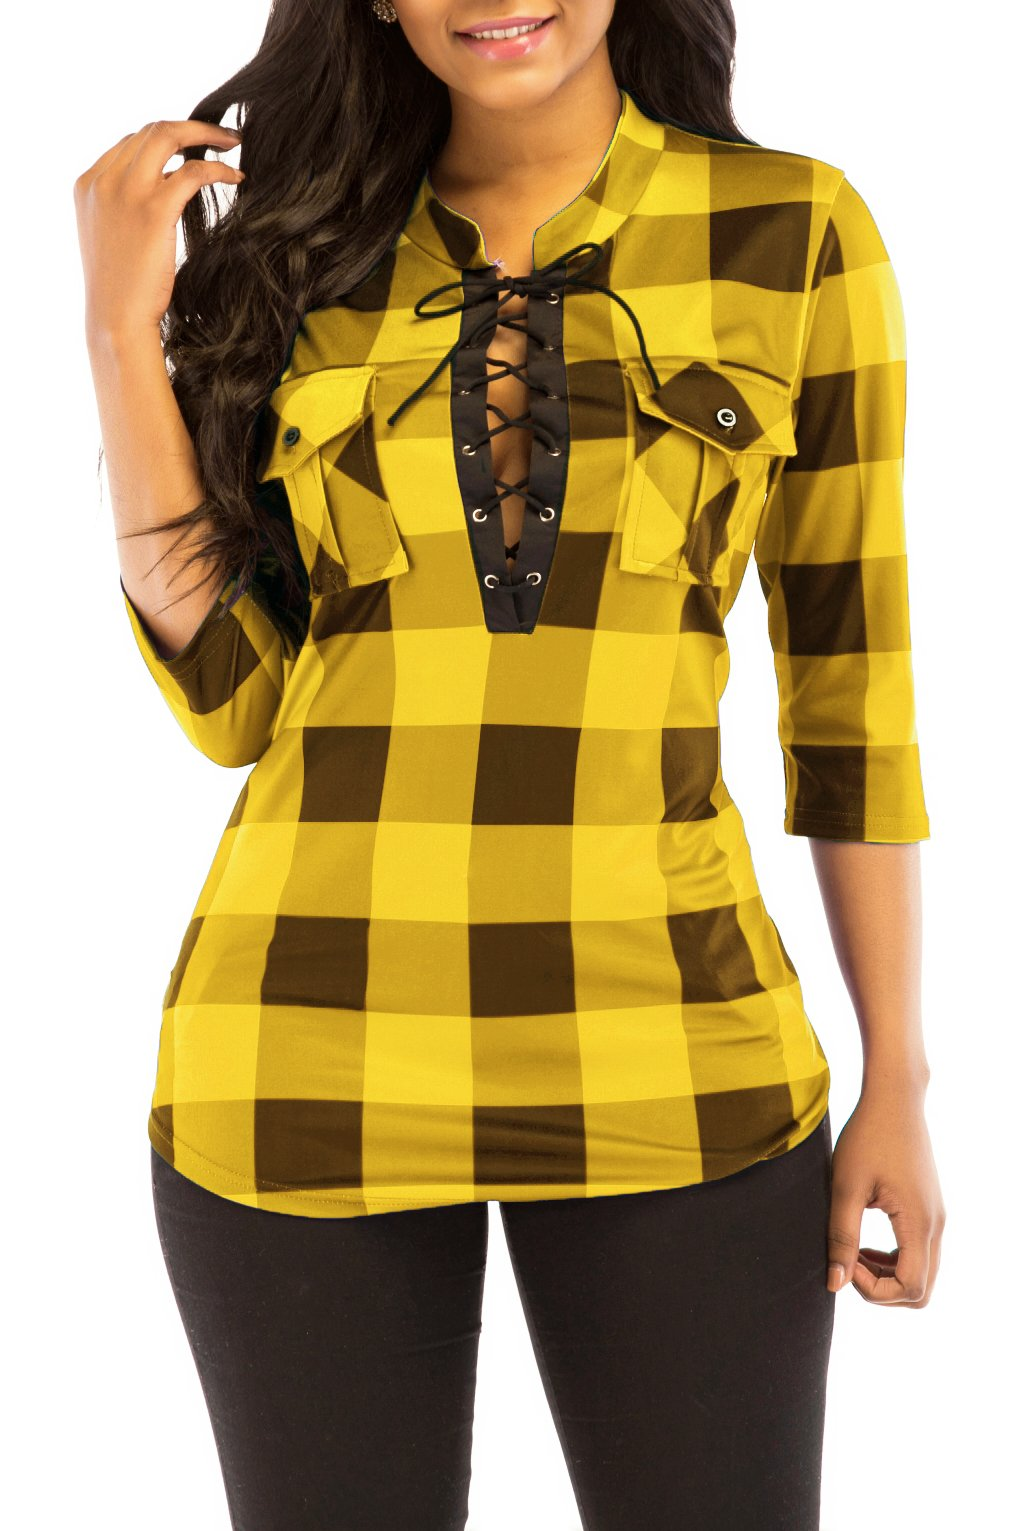 KISSMODA Women's Sexy Fitted Plaid Shirt 3/4 Sleeves Blouses V Neck Tie Front Tops with Pockets (X-Large, Yellow)